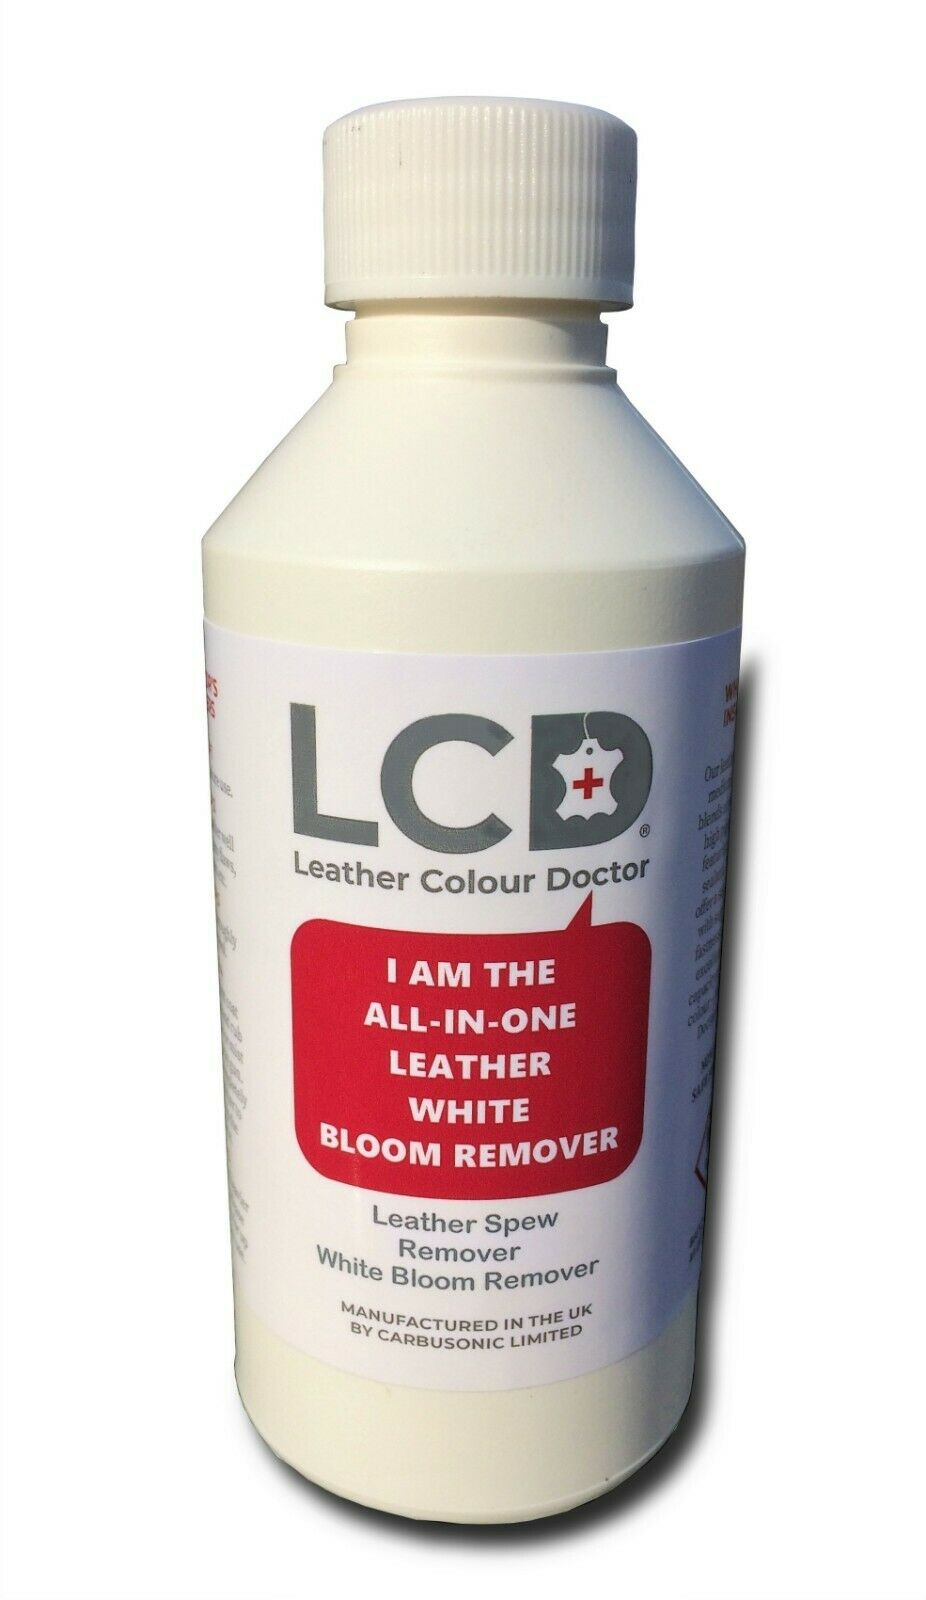 Leather Spew Remover White Bloom Stain Treatment Prevents White Bloom Returning